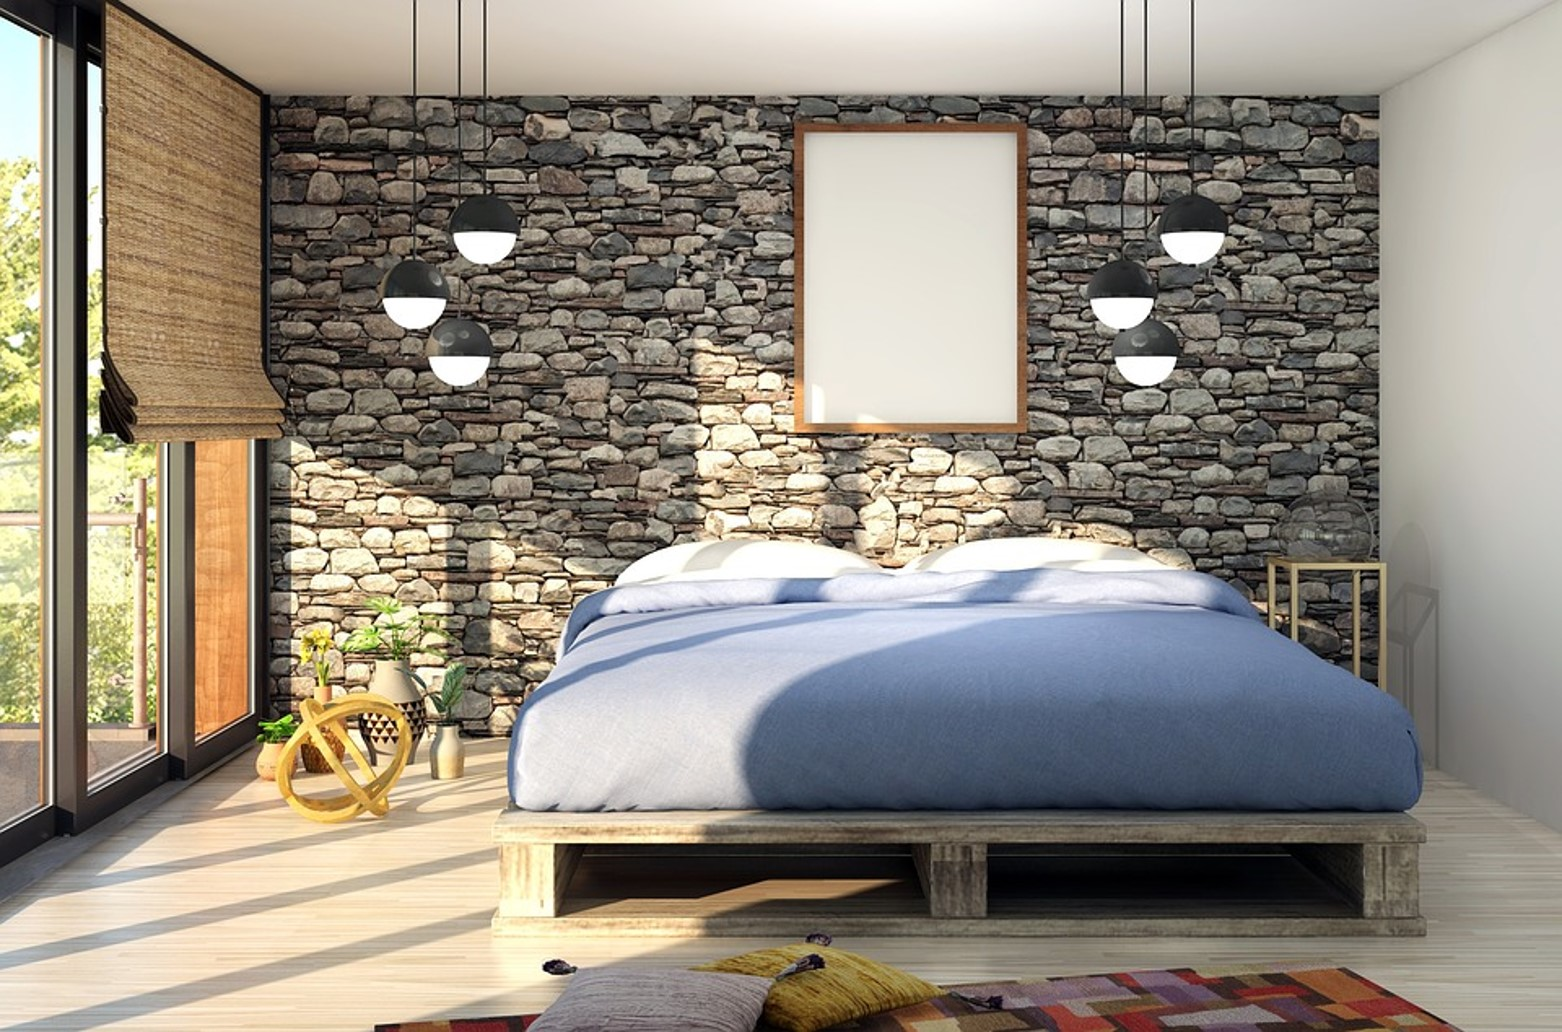 matelas pliant les mod les confortables du moment nin 39 s lifestyle blog. Black Bedroom Furniture Sets. Home Design Ideas